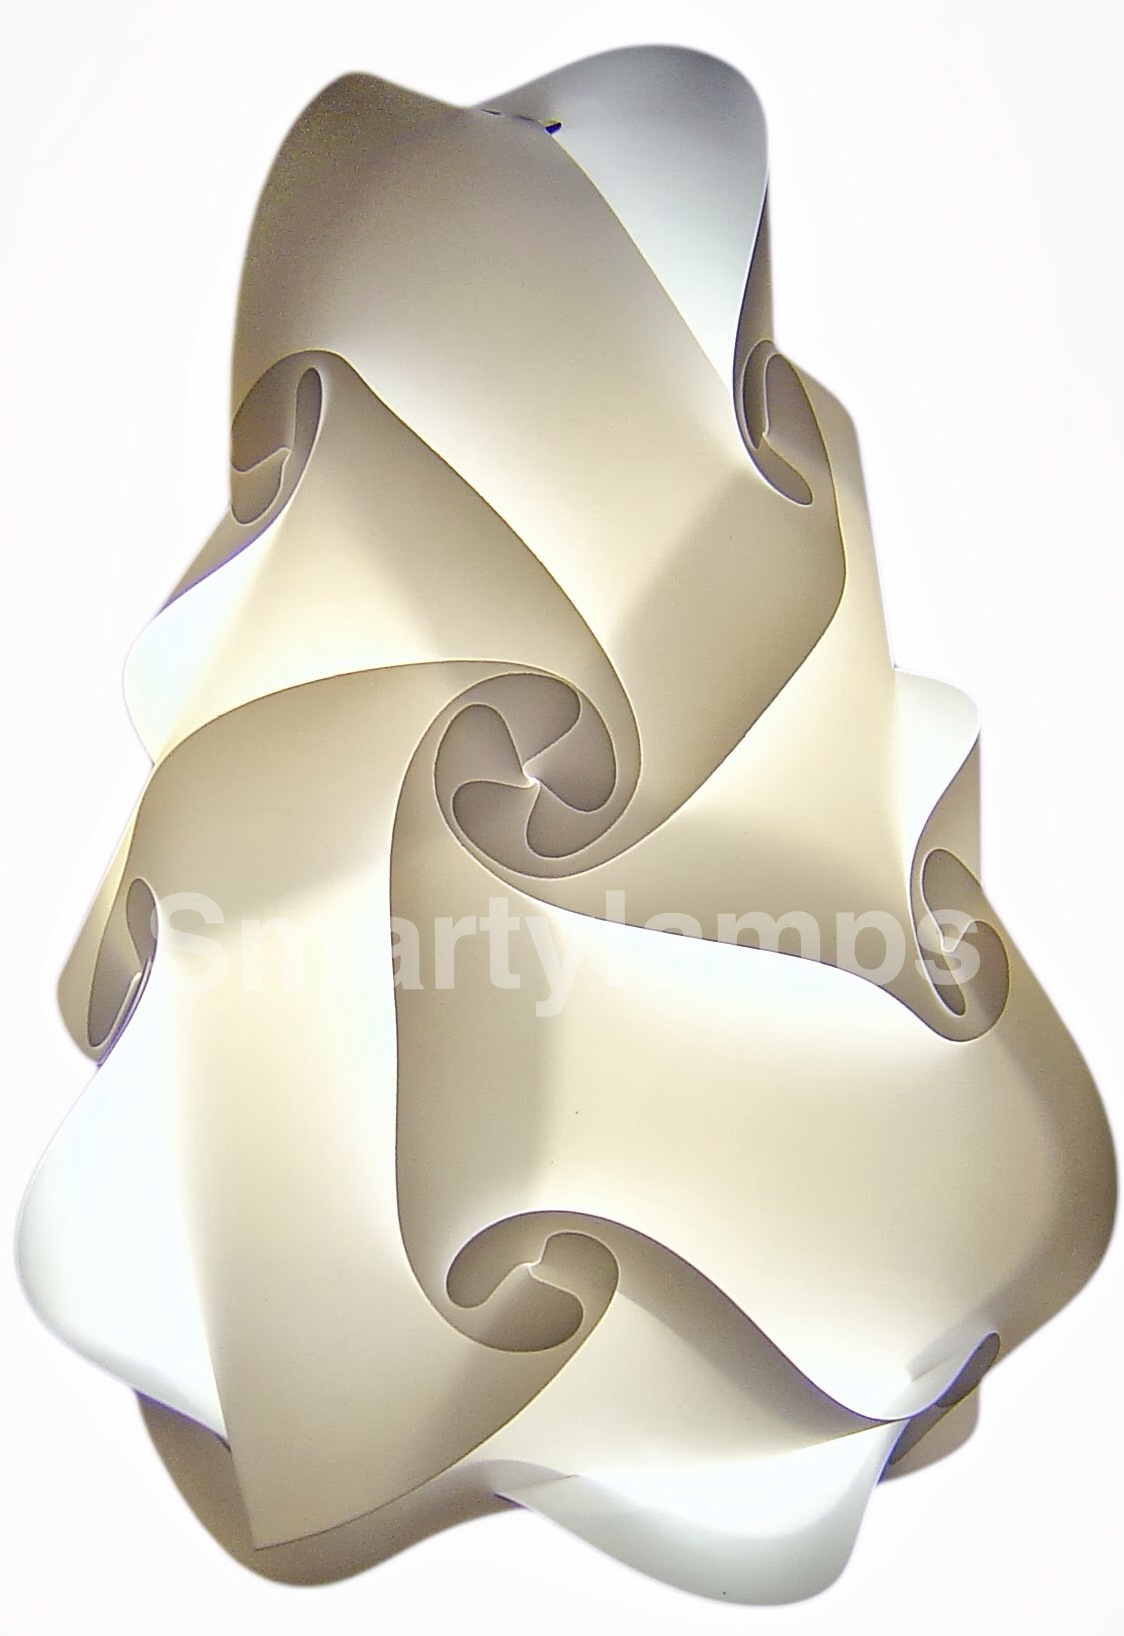 White retro designer lampshade made from 15 pieces smarty lamps gudrun lampshade mozeypictures Image collections